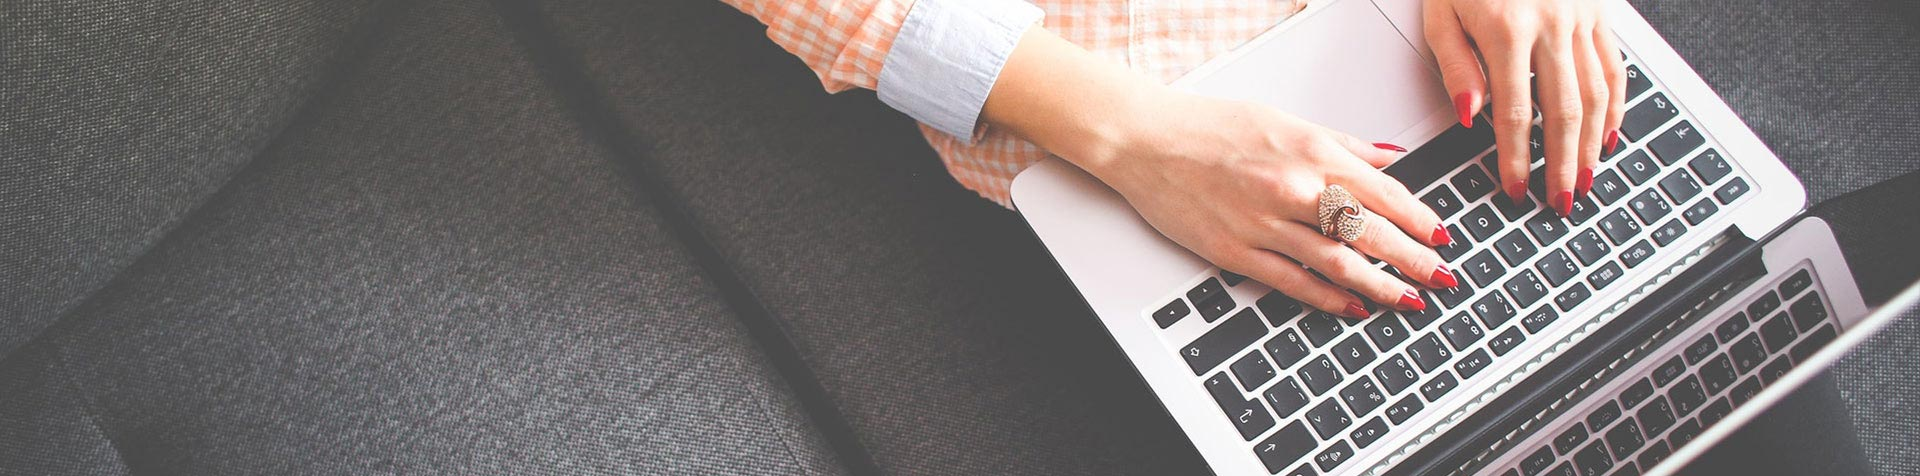 5 Habits of Content Writers That Make Them Successful